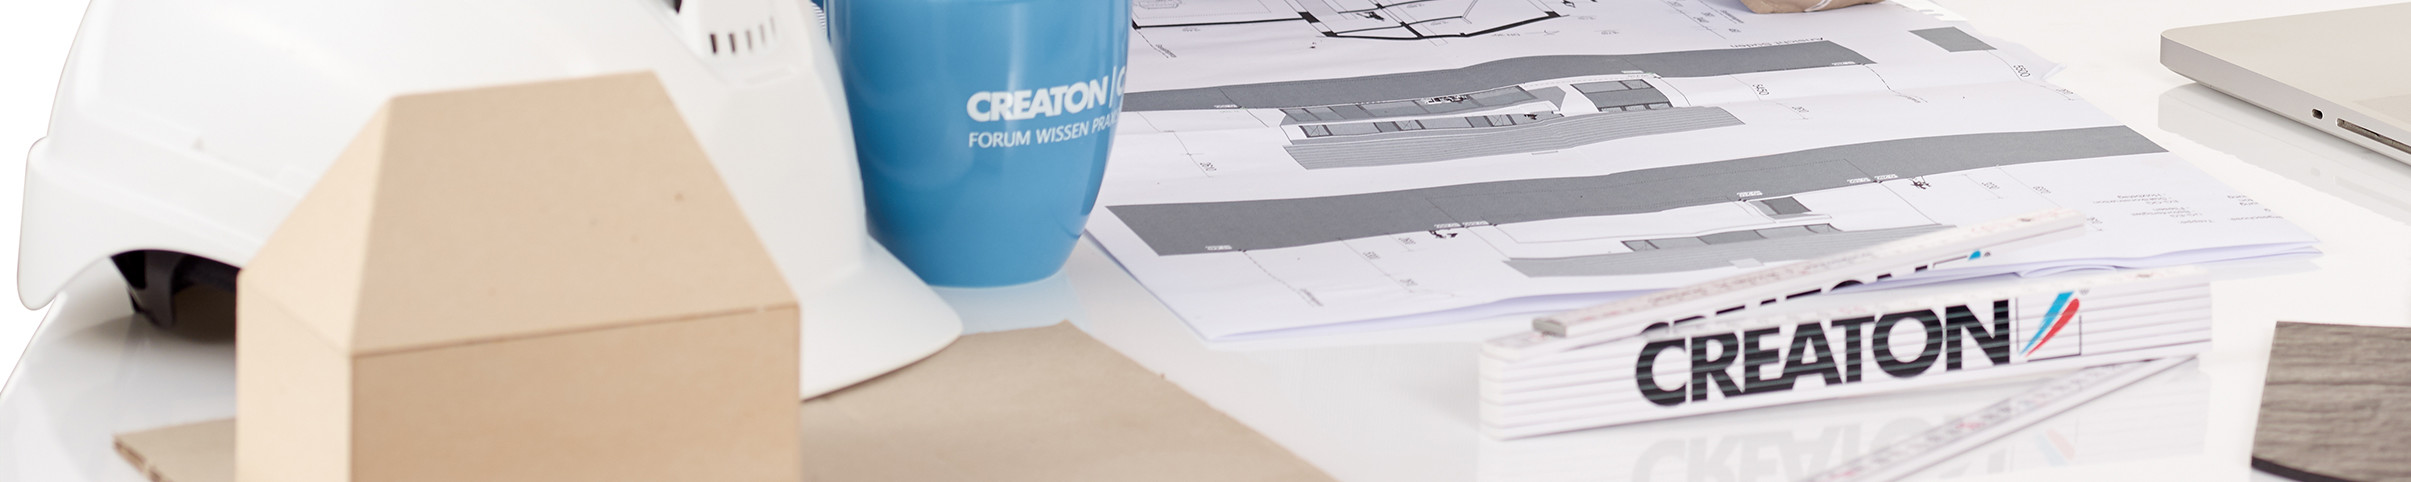 Desk with construction plan